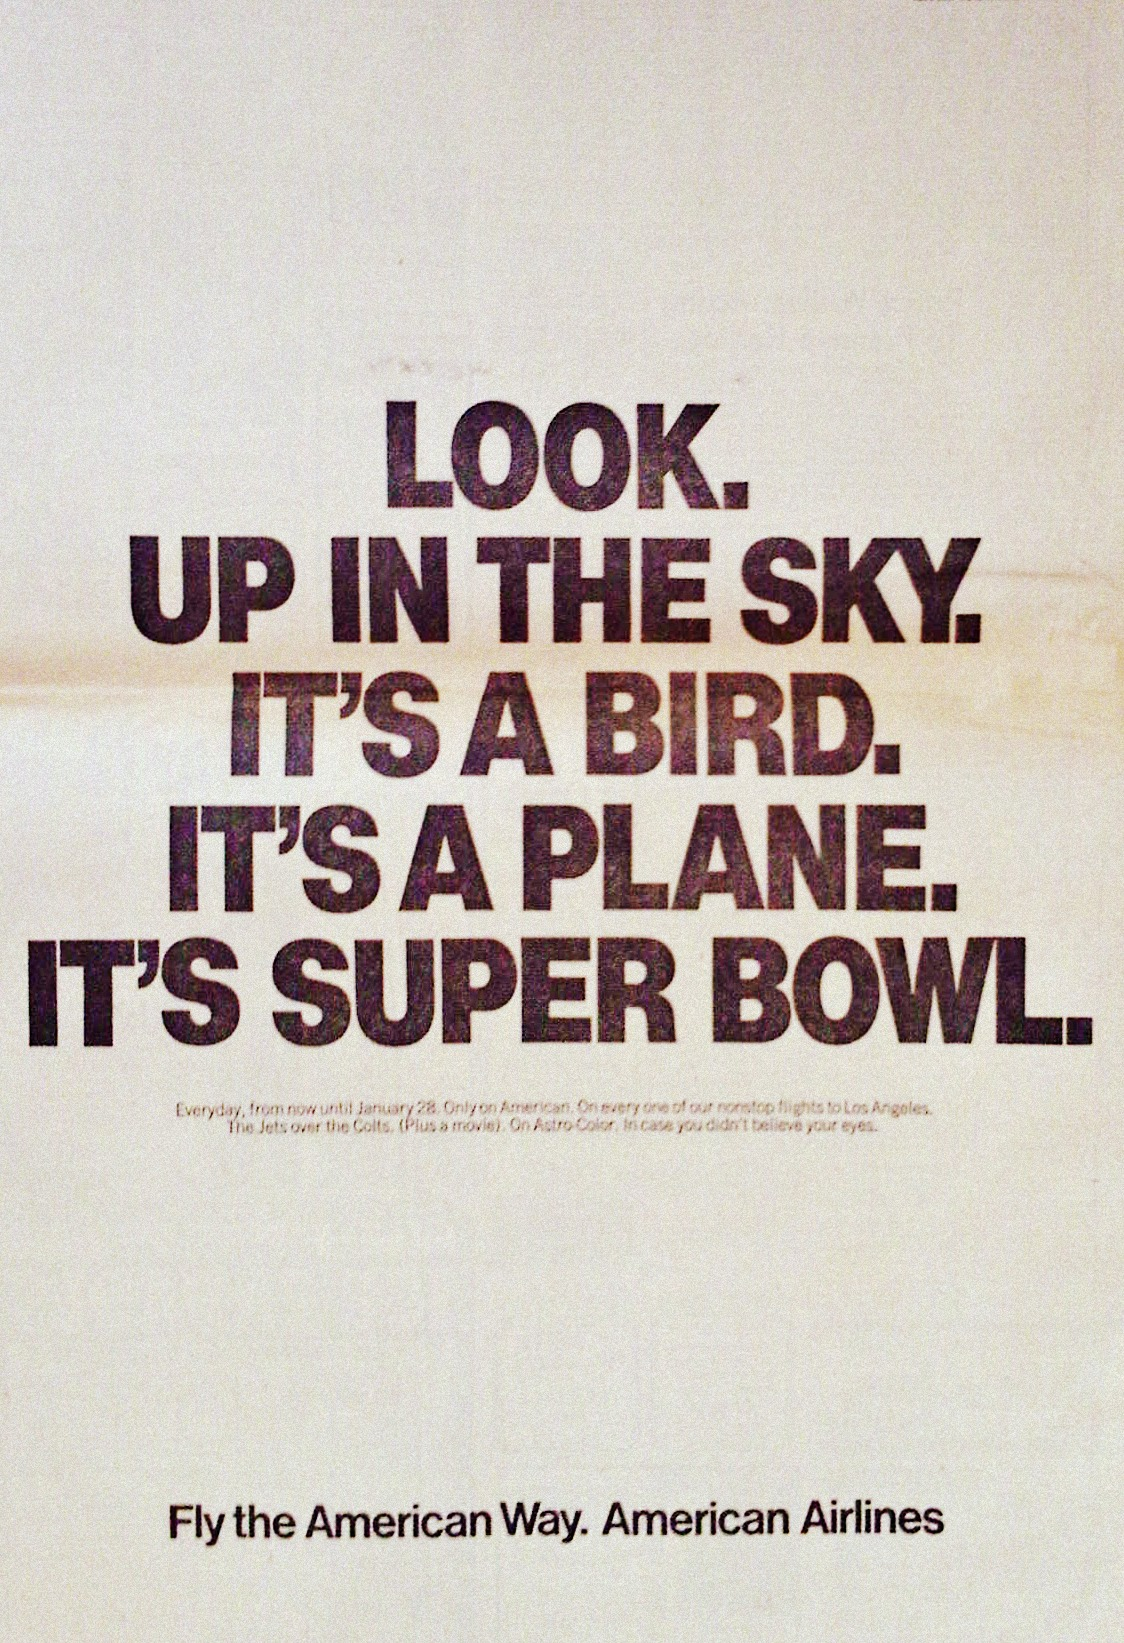 American Airlines Super Bowl III 1969